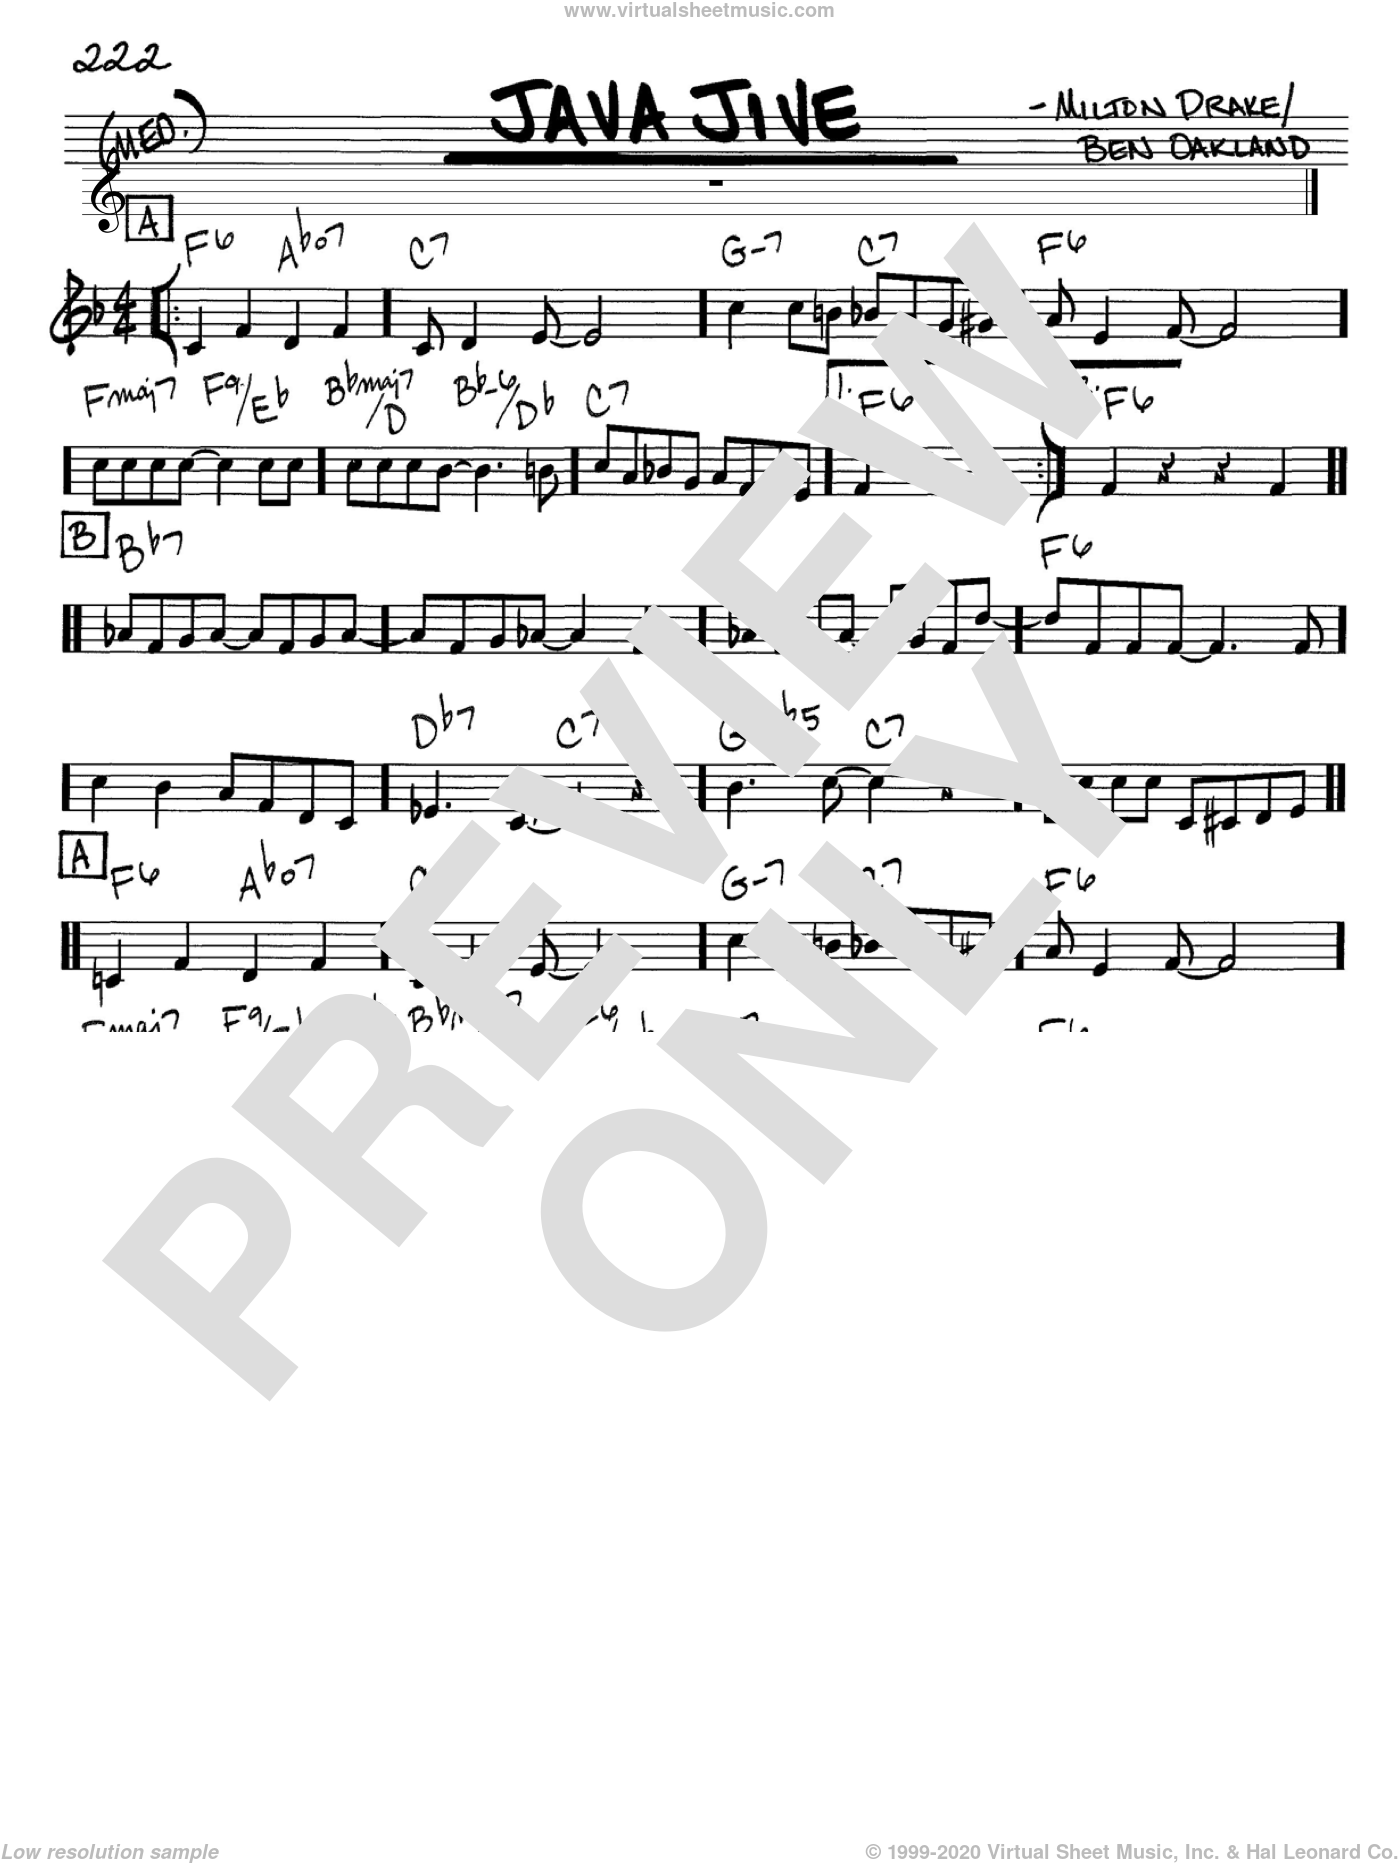 Java Jive sheet music for voice and other instruments (in C) by The Ink Spots, Ben Oakland and Milton Drake, intermediate. Score Image Preview.